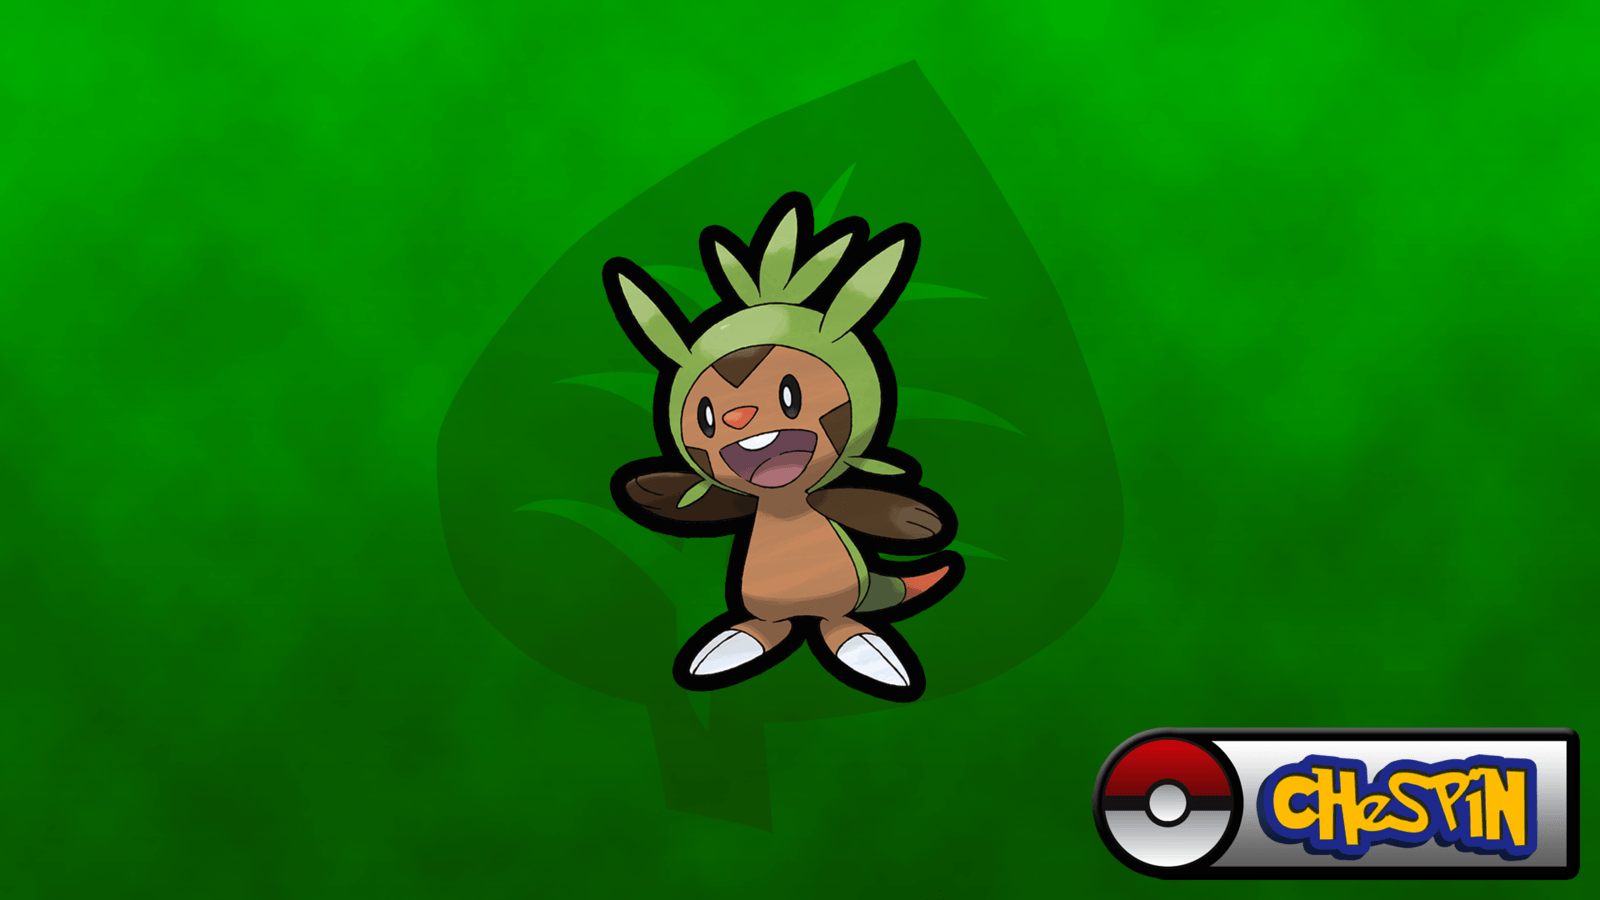 Image Gallery of Pokemon Chespin Wallpaper